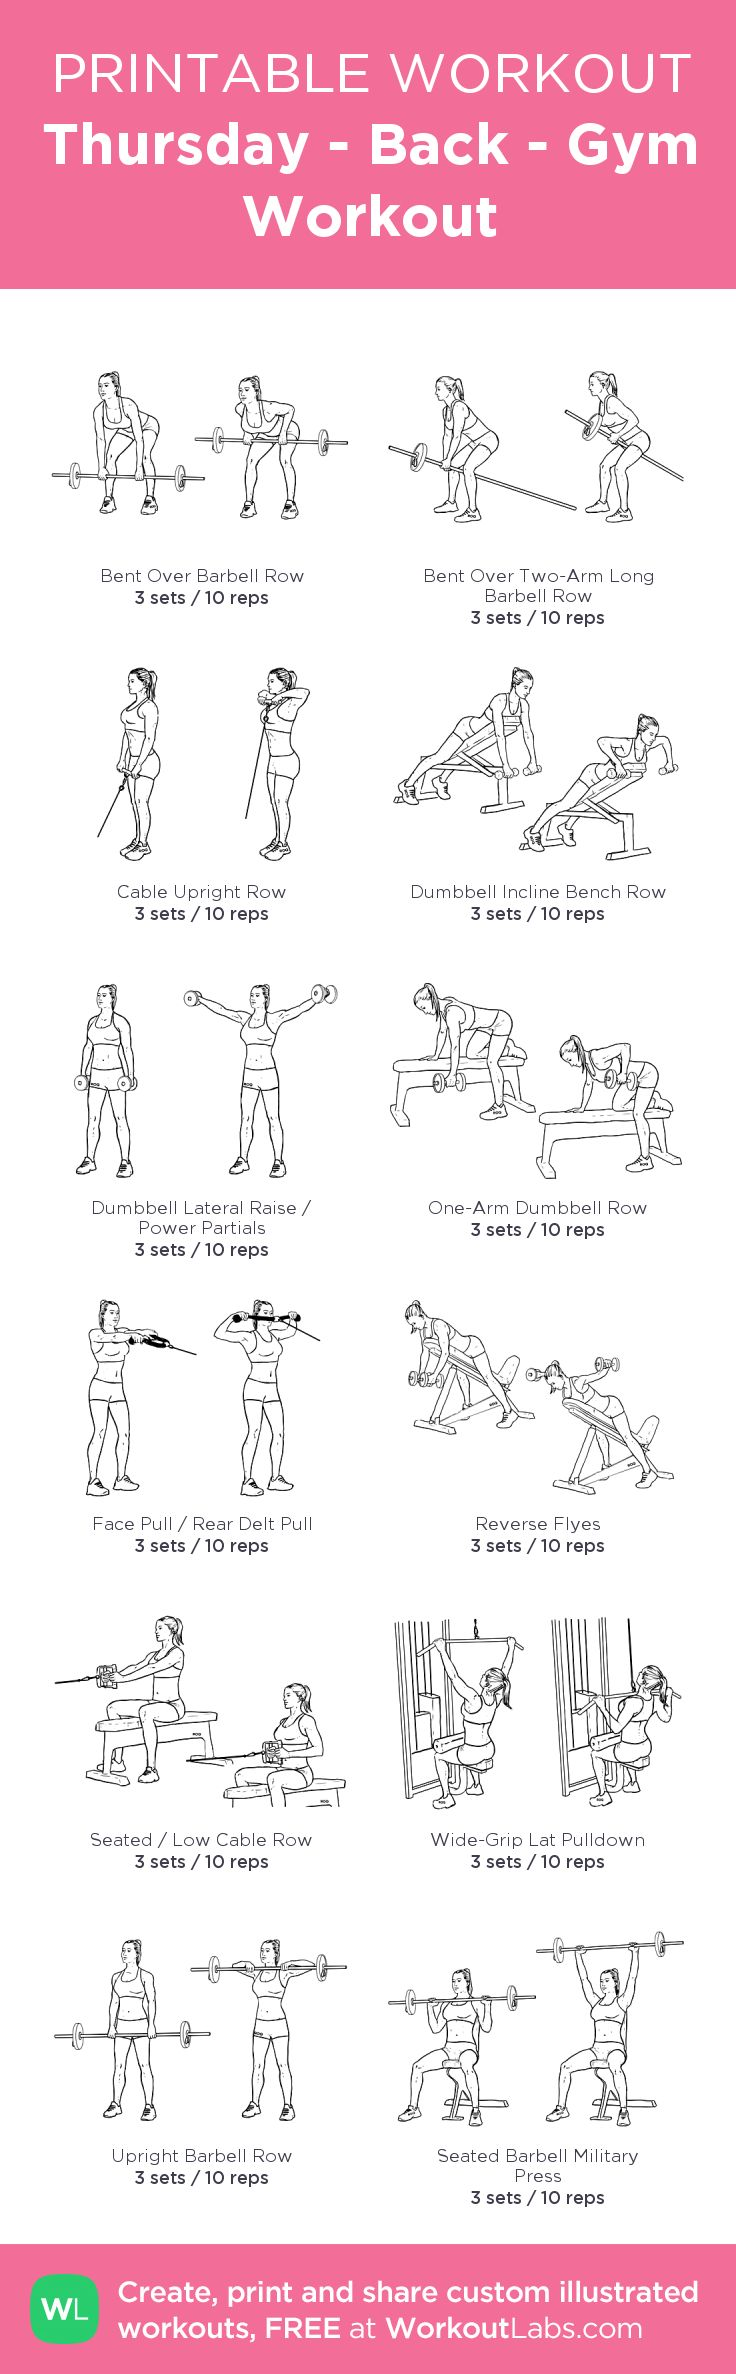 Thursday - Back - Gym Workout – my custom workout created at WorkoutLabs.com • Click through to download as printable PDF! #customworkout